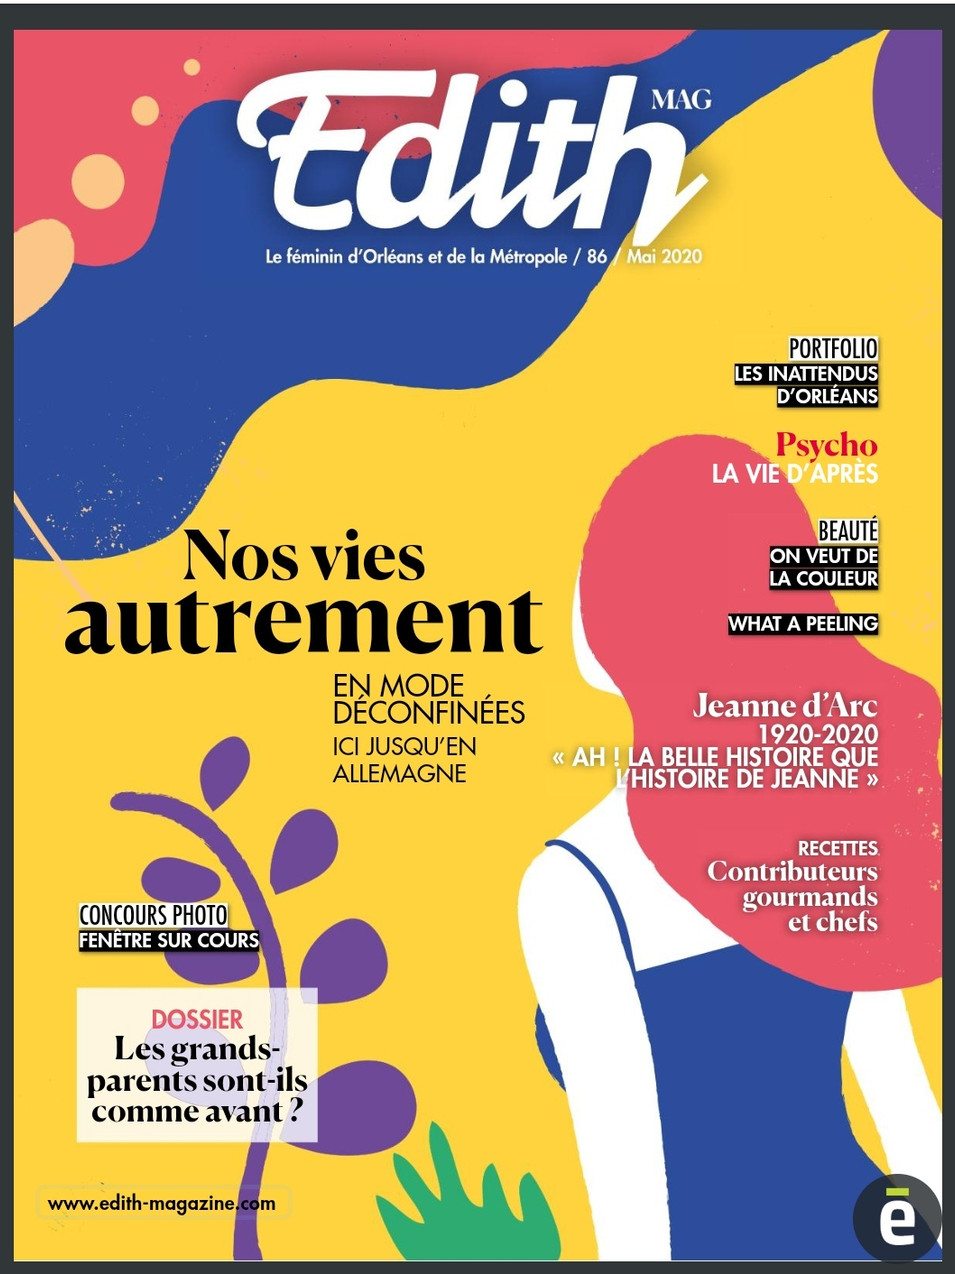 EDITH magazine Orleans Tours